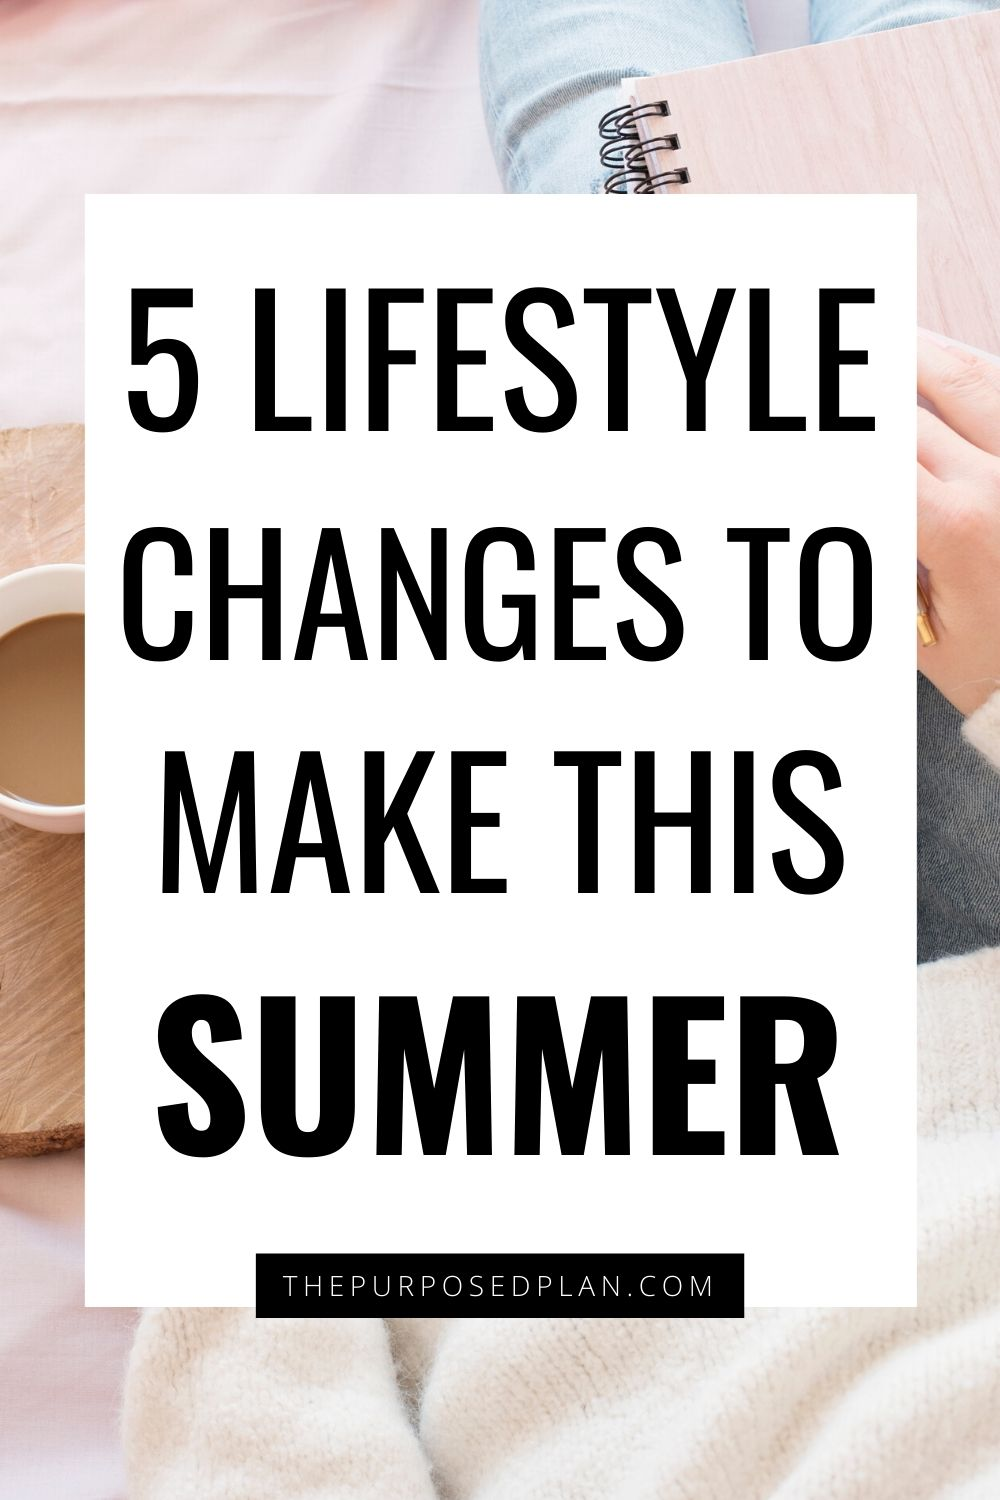 LIFESTYLE CHANGES TO MAKE THIS YEAR FOR SELF IMPROVEMENT